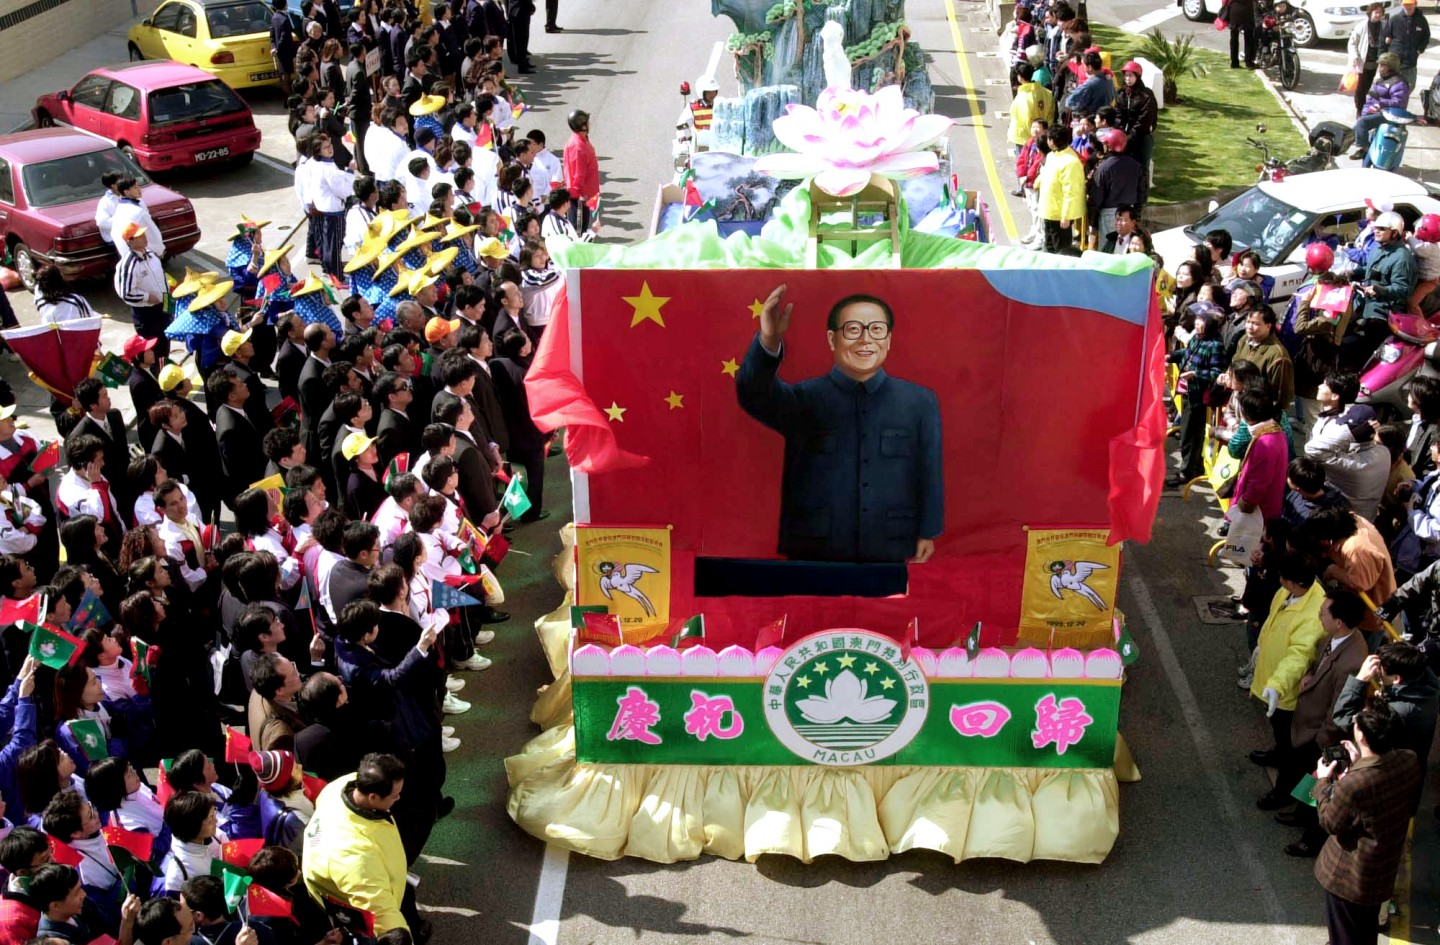 The people of Macau felt a strong sense of belonging to China and welcomed the handover. The photo shows a celebration parade of floats and dancers weaving through the streets of Macau in celebration of the return of Macau to China in 1999. (SPH)